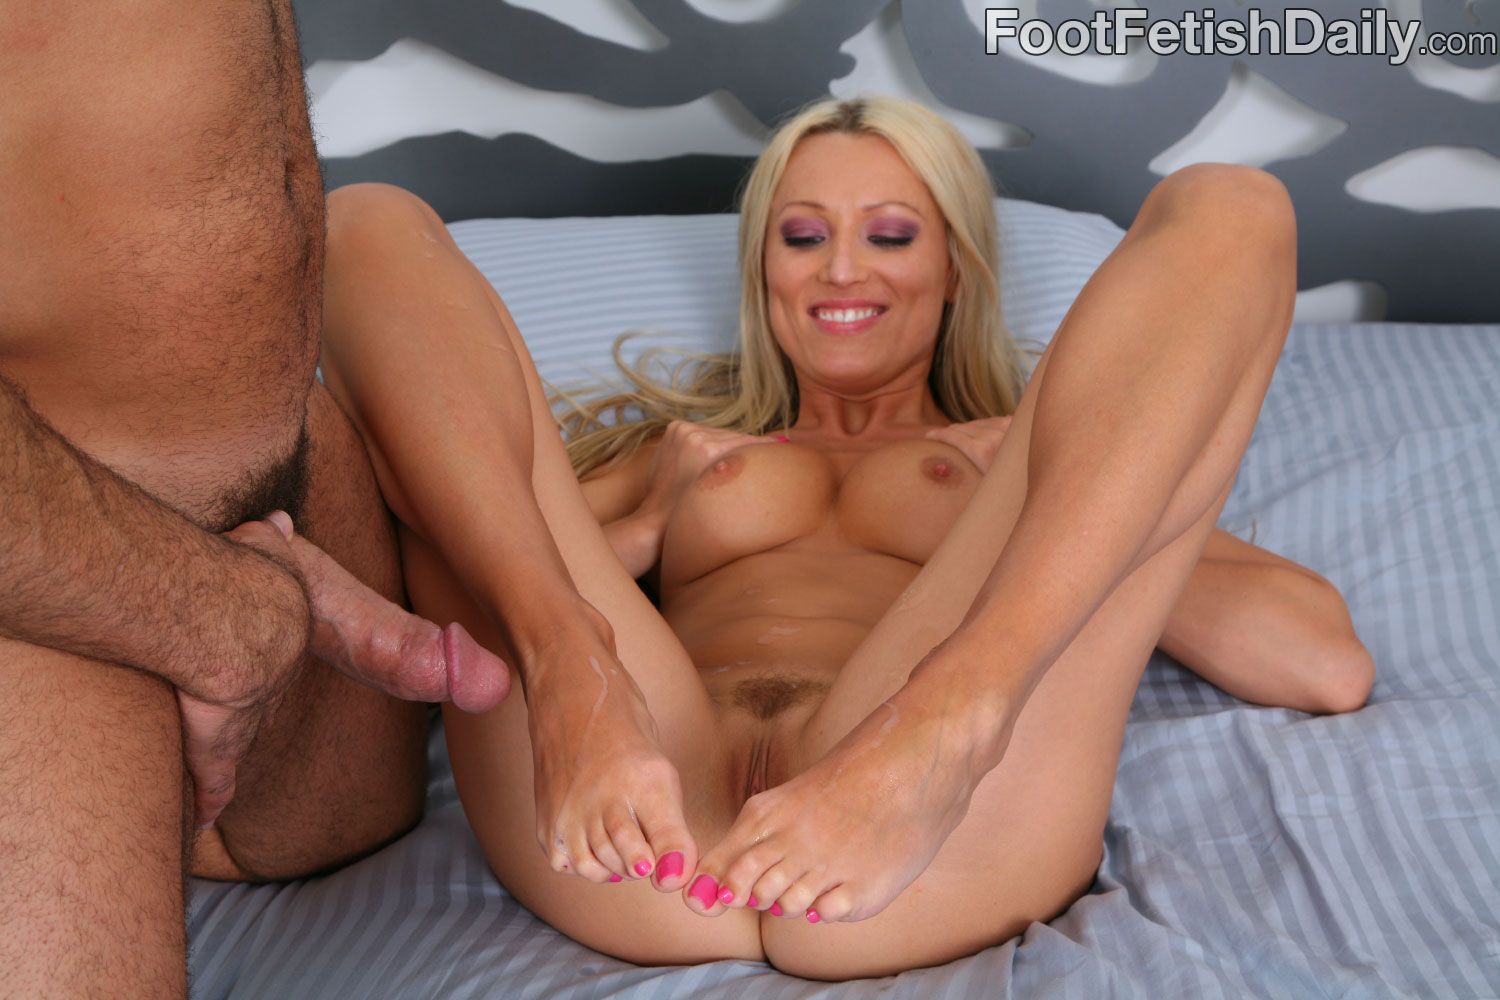 foot fetish escort sex party